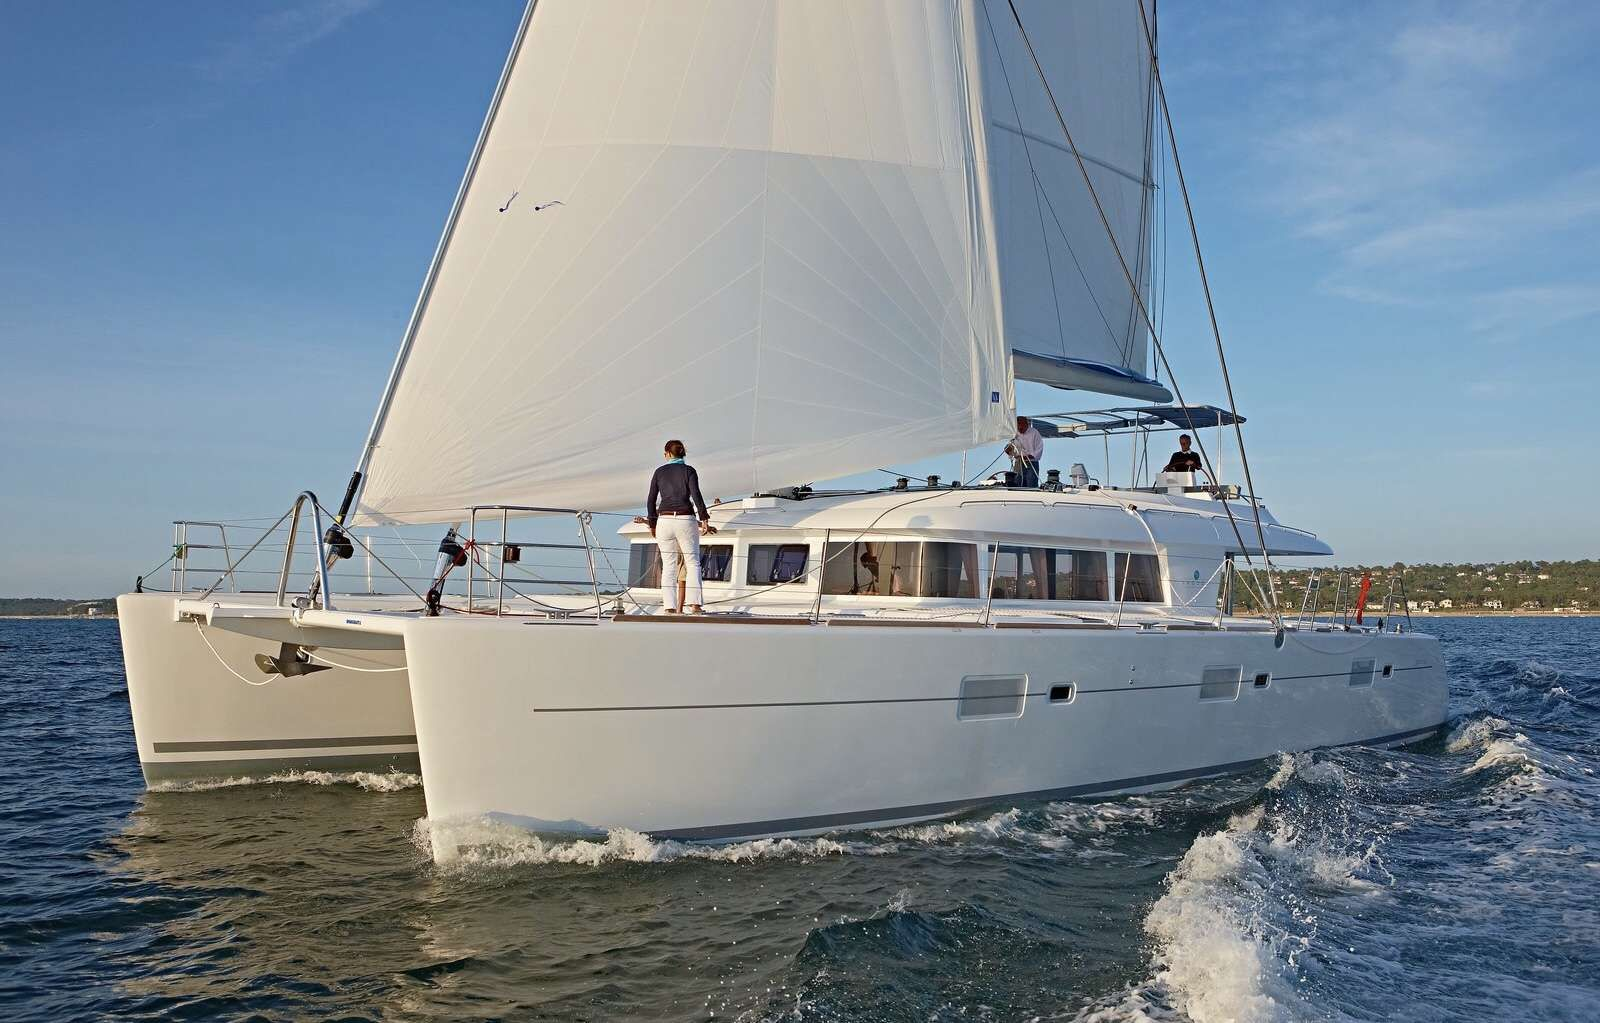 GB Odyssey Yacht Charter - Ritzy Charters